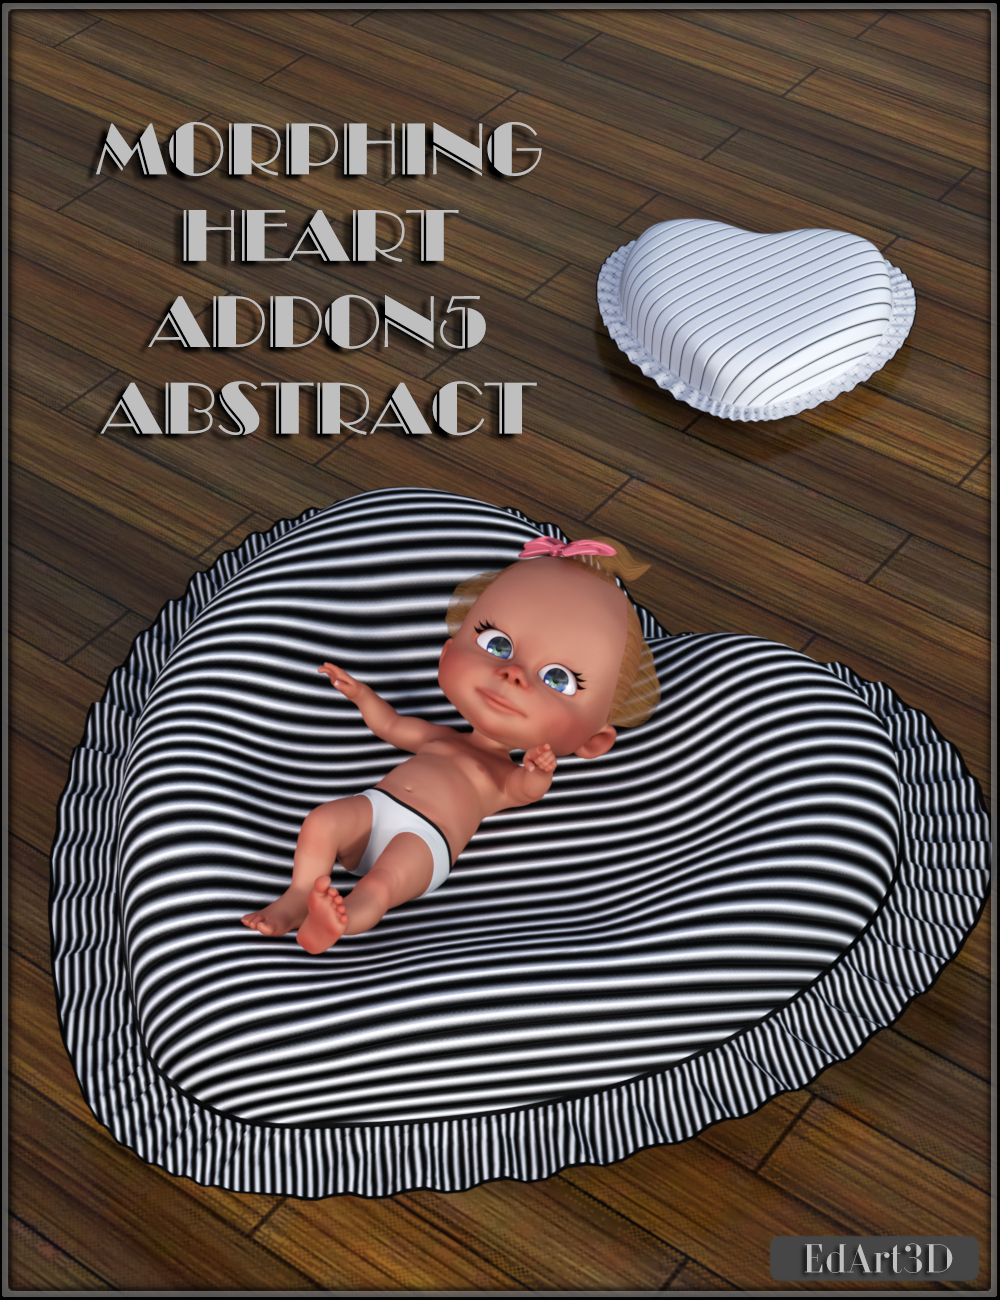 Morphing Heart AddOn5 Abstract